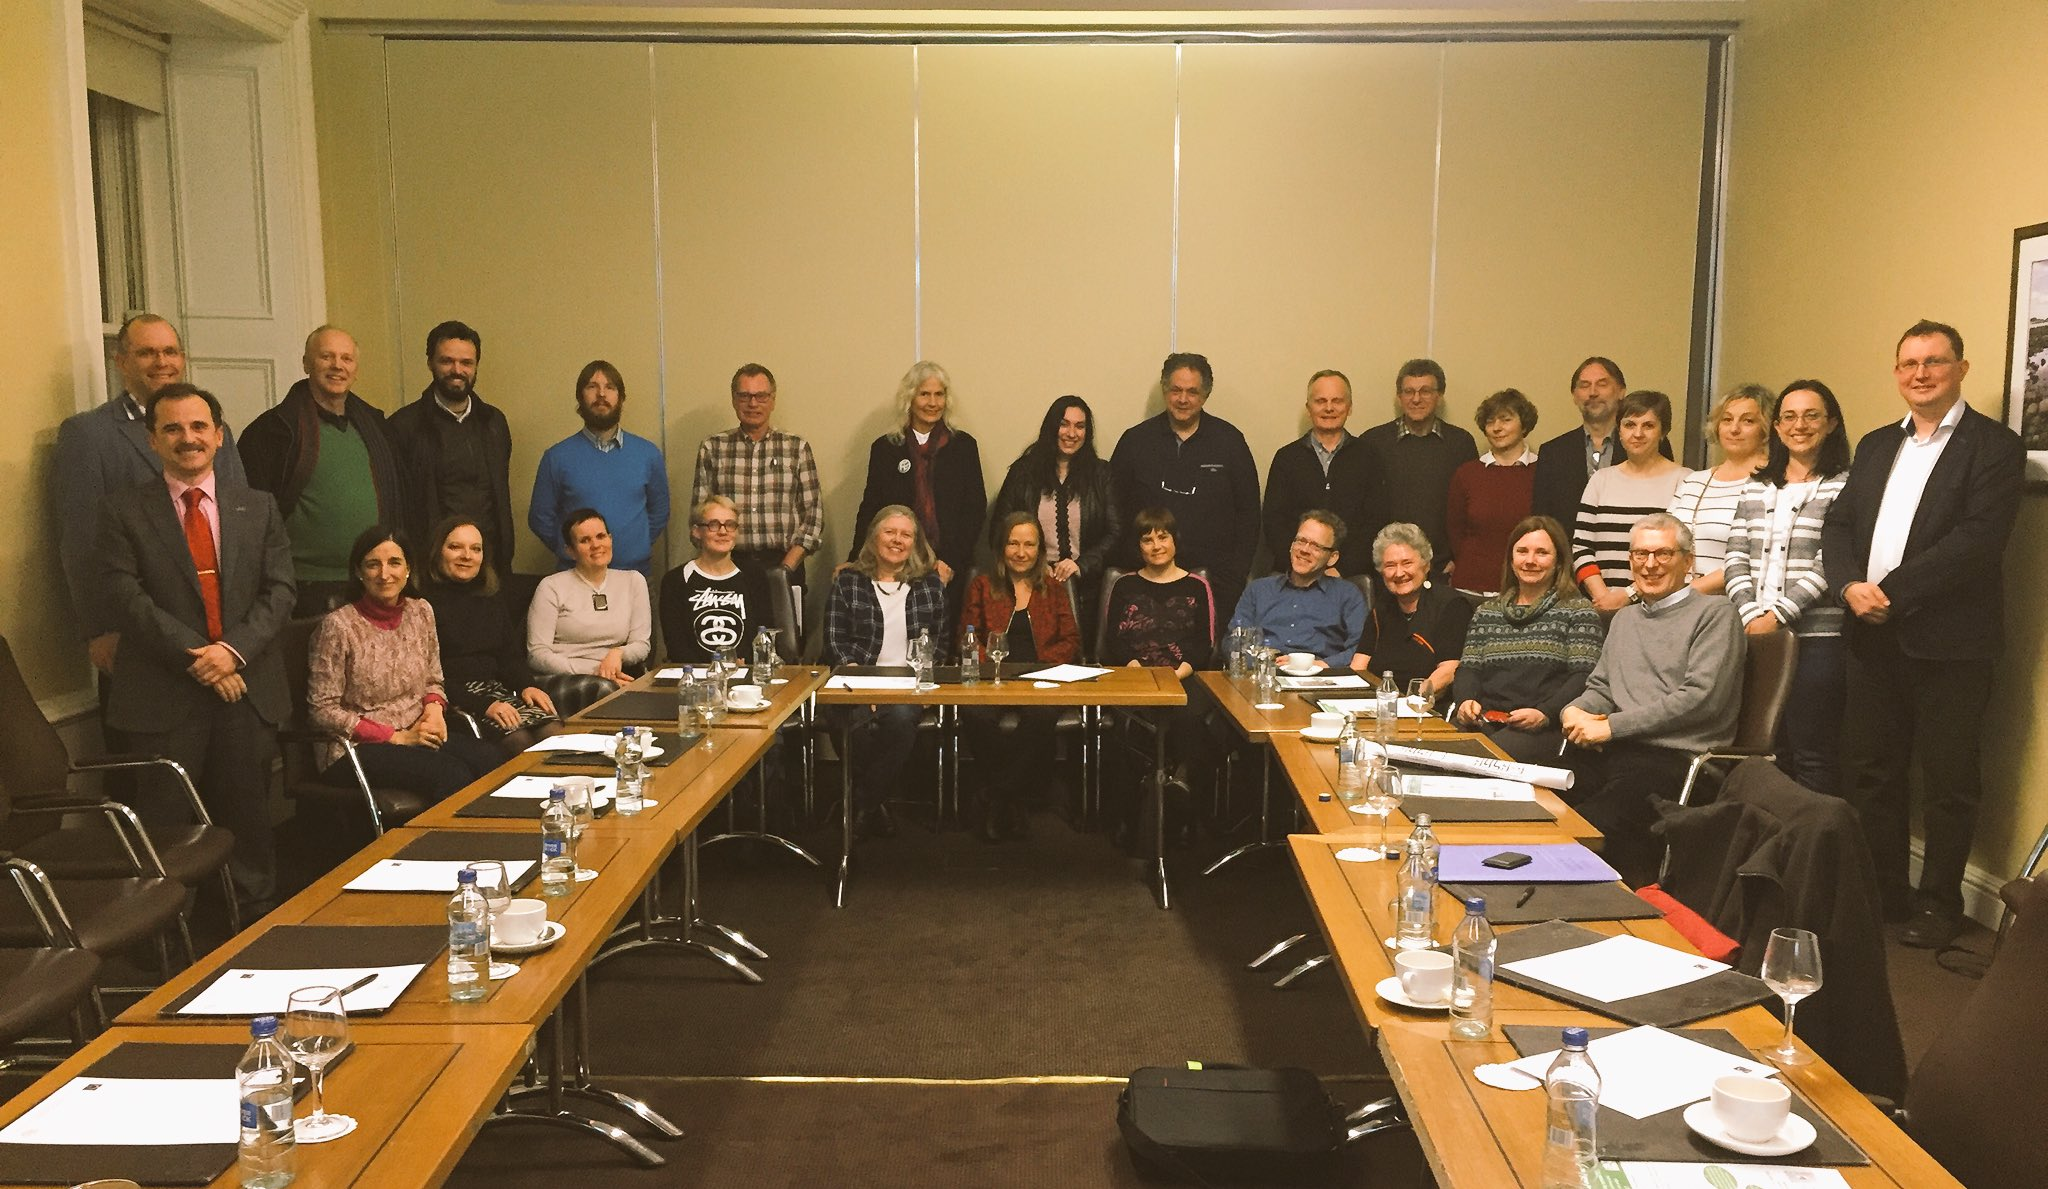 @WoncaEurope Working Group on  #safety & #quality  (EQUIP) delegates meeting before #EQUIPDublin2017 https://t.co/lv5EpRdvOb